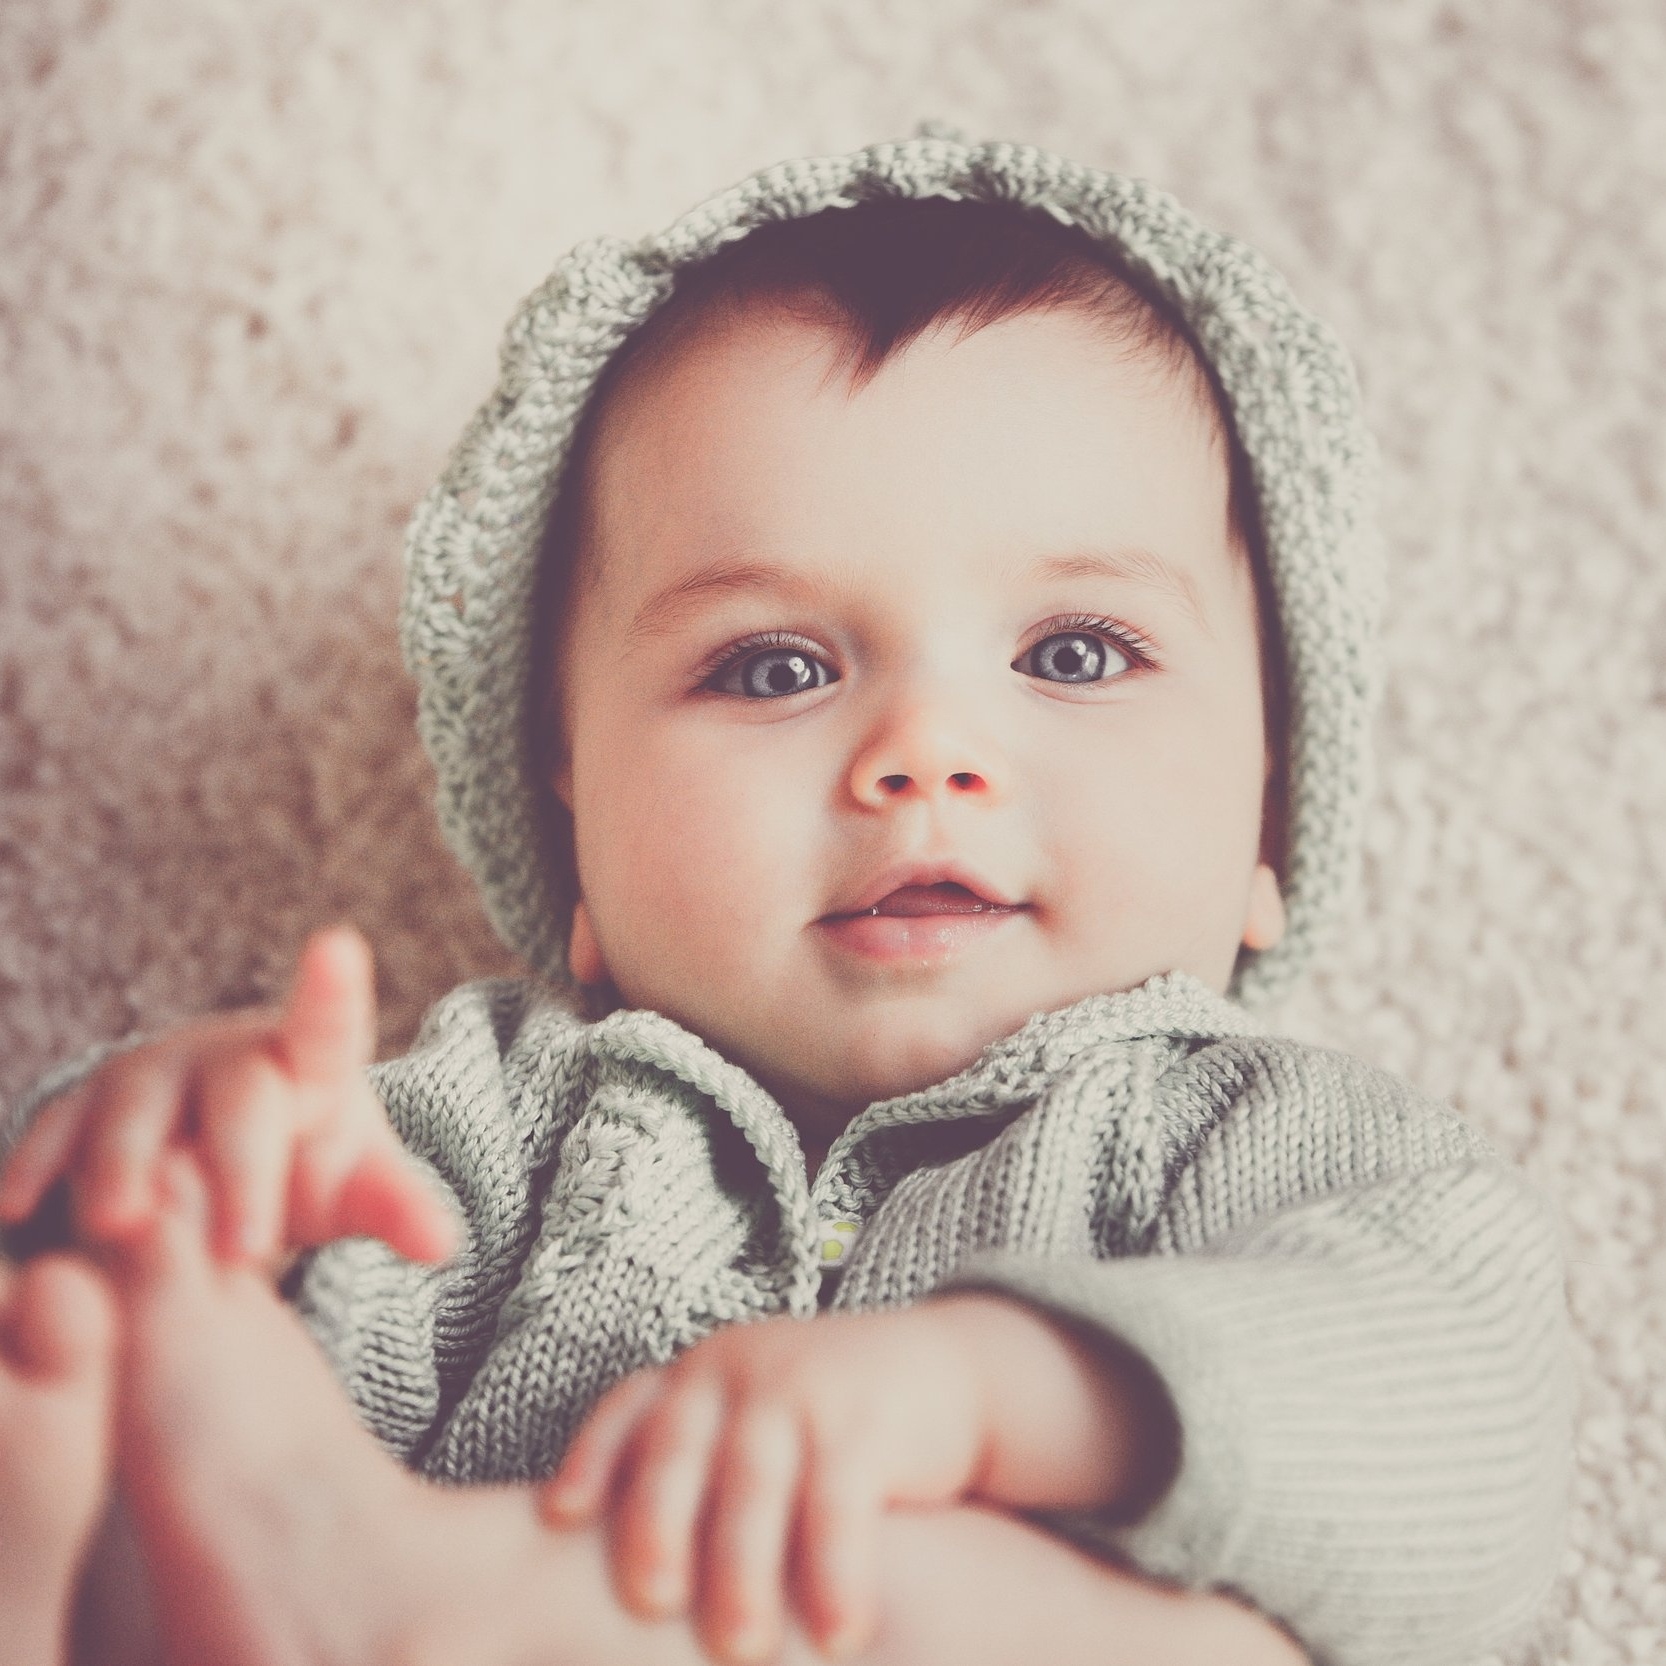 Baby Care Workshops - Baby and maternity care, lactation support & more